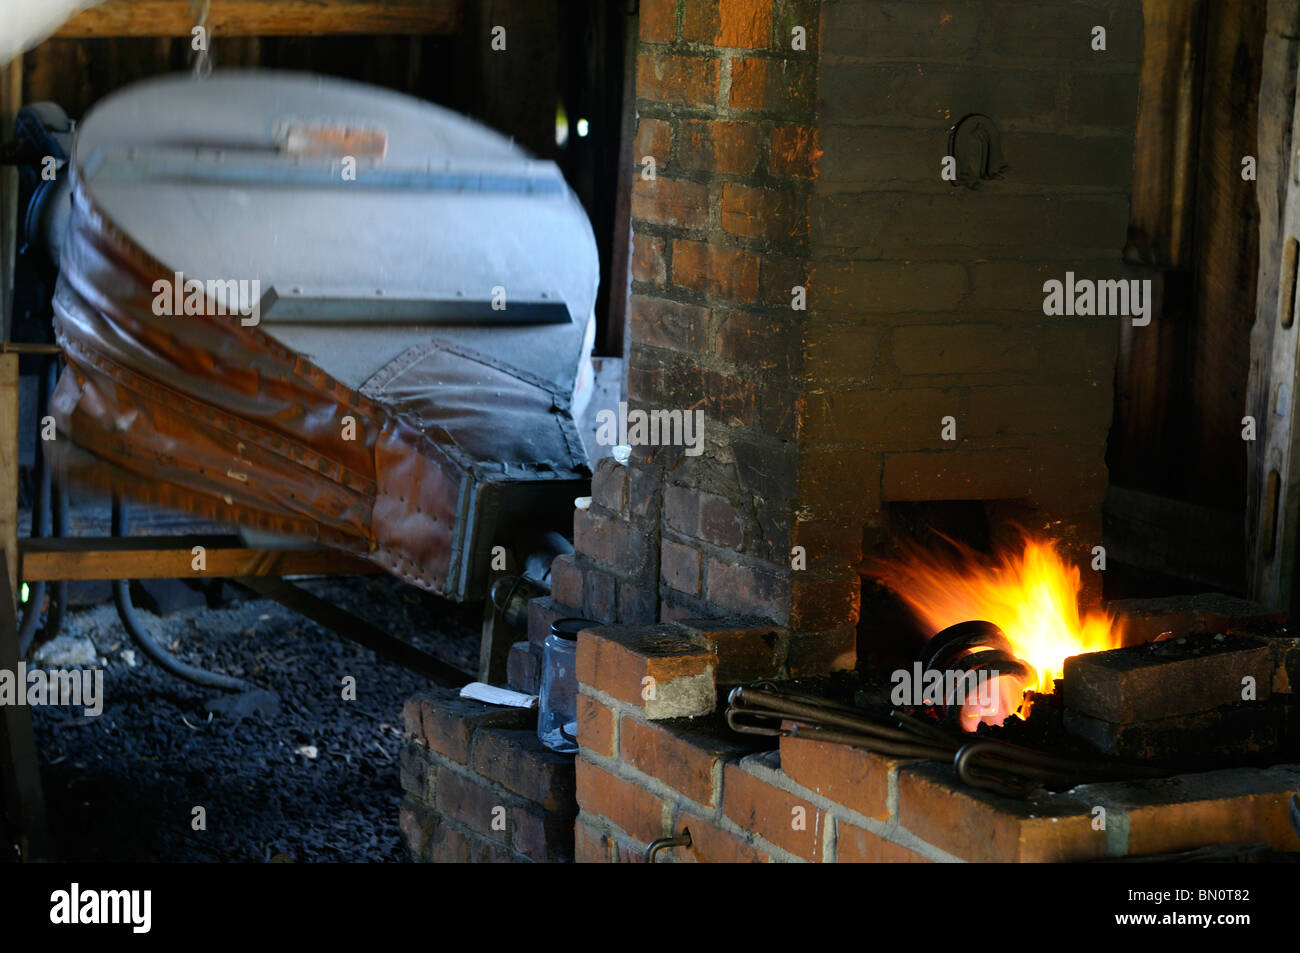 Historic Blacksmith shop bellows and forge furnace at Lang Pioneer Village Keene Ontario - Stock Image